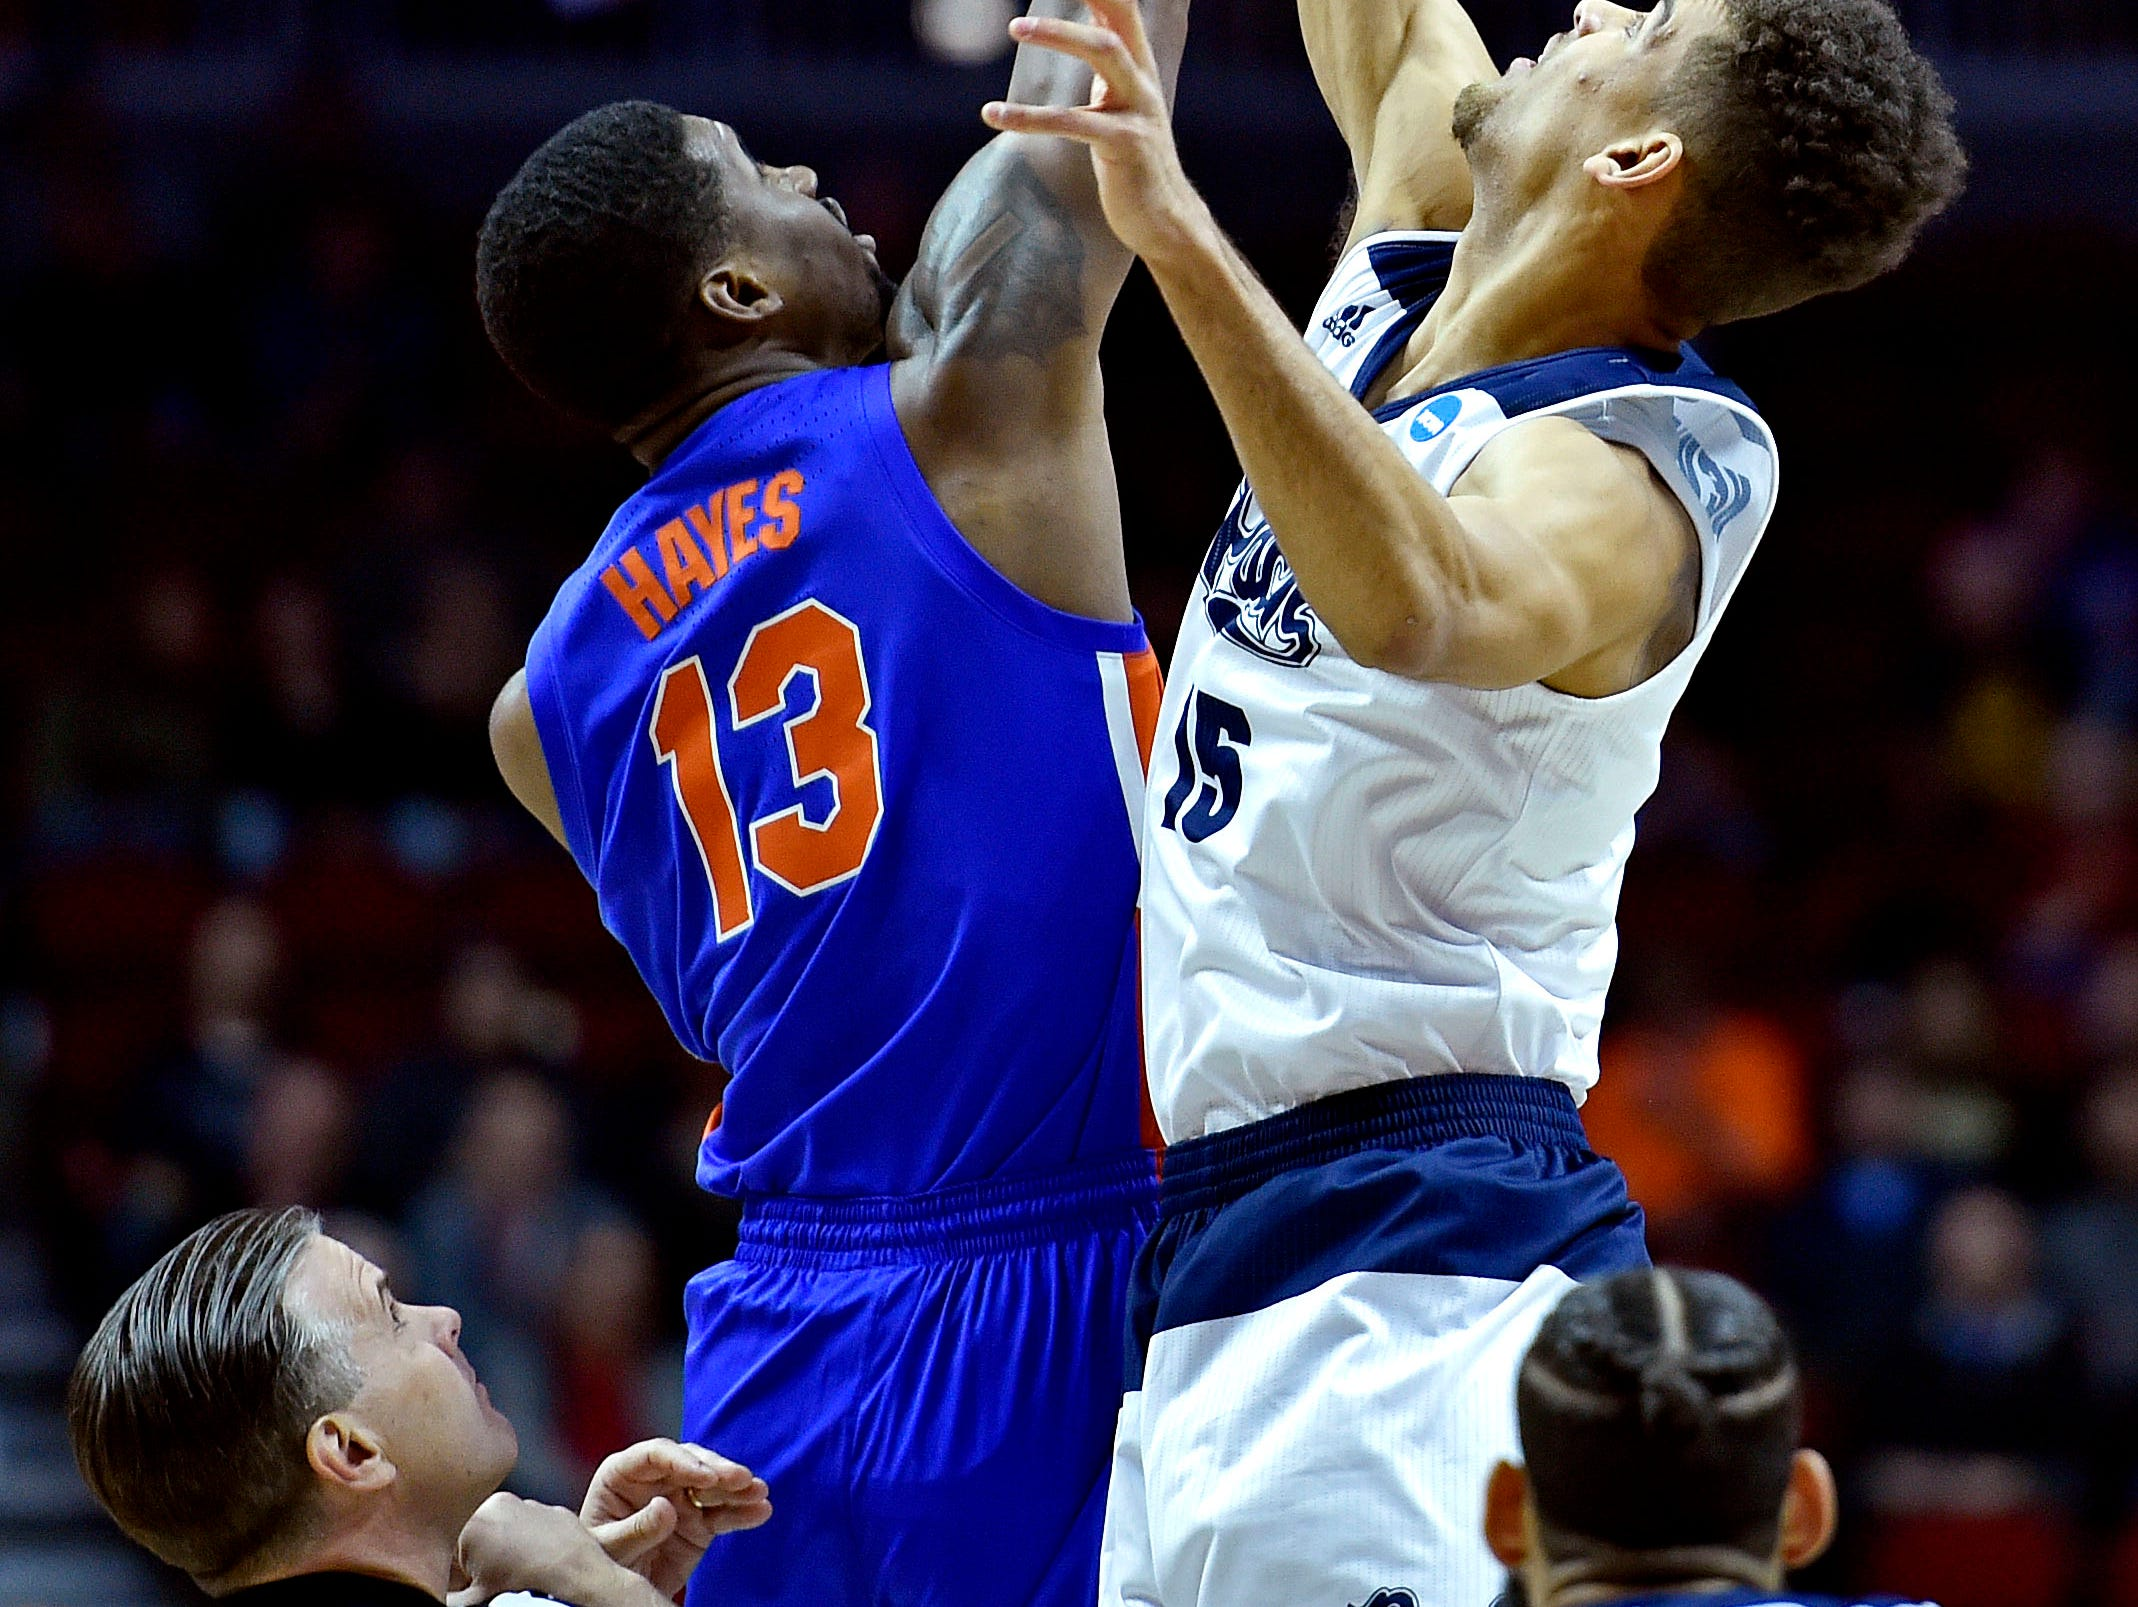 Mar 21, 2019; Des Moines, IA, United States; Florida Gators center Kevarrius Hayes (13) and Nevada Wolf Pack forward Trey Porter (15) go for the opening tip in the first round of the 2019 NCAA Tournament at Wells Fargo Arena. Mandatory Credit: Jeffrey Becker-USA TODAY Sports